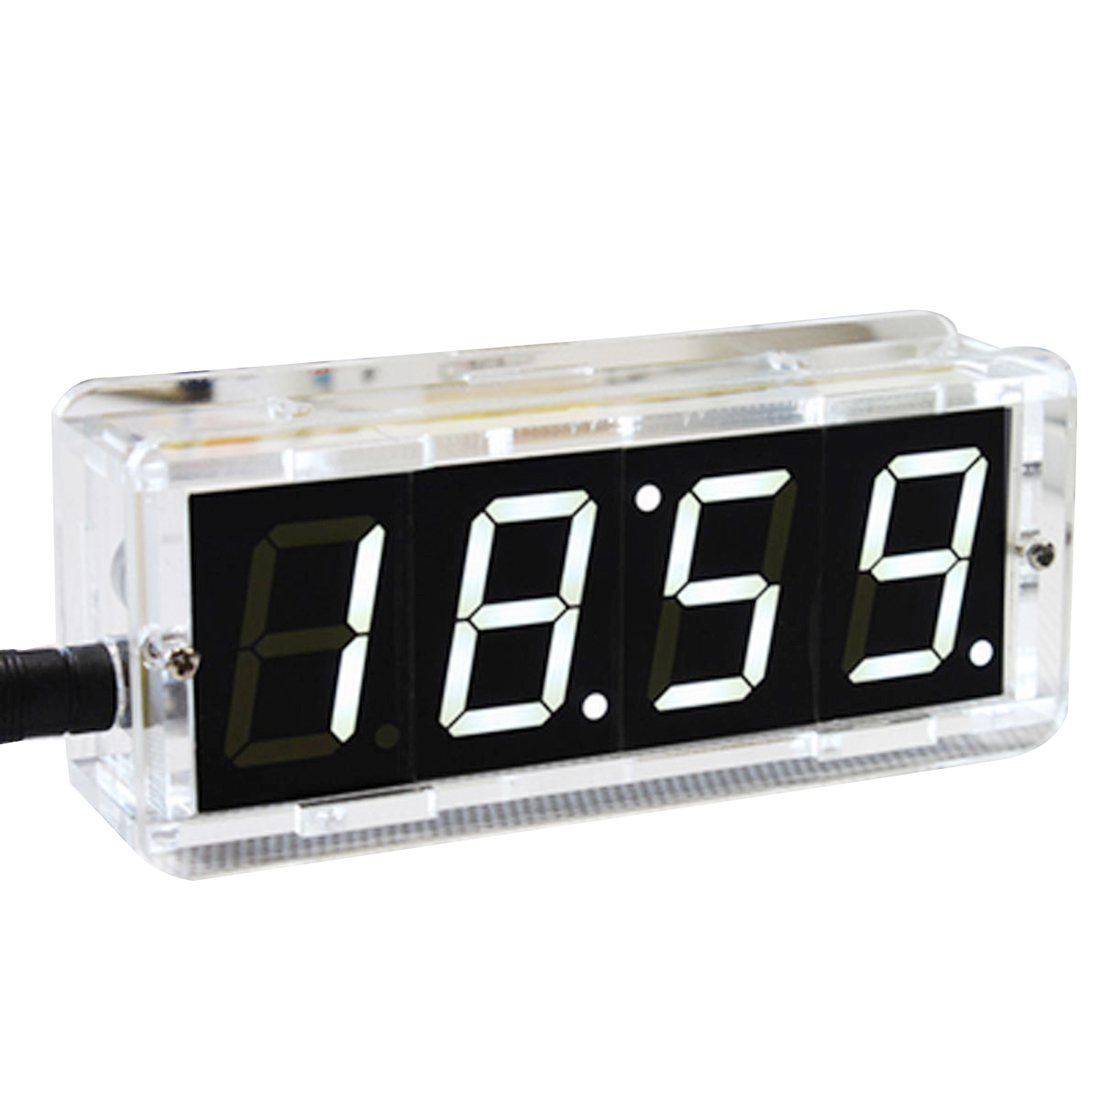 US $7 64 11% OFF|DIY Digital LED Large Screen Display Clock kit with  case-in Alarm Clocks from Home & Garden on Aliexpress com | Alibaba Group